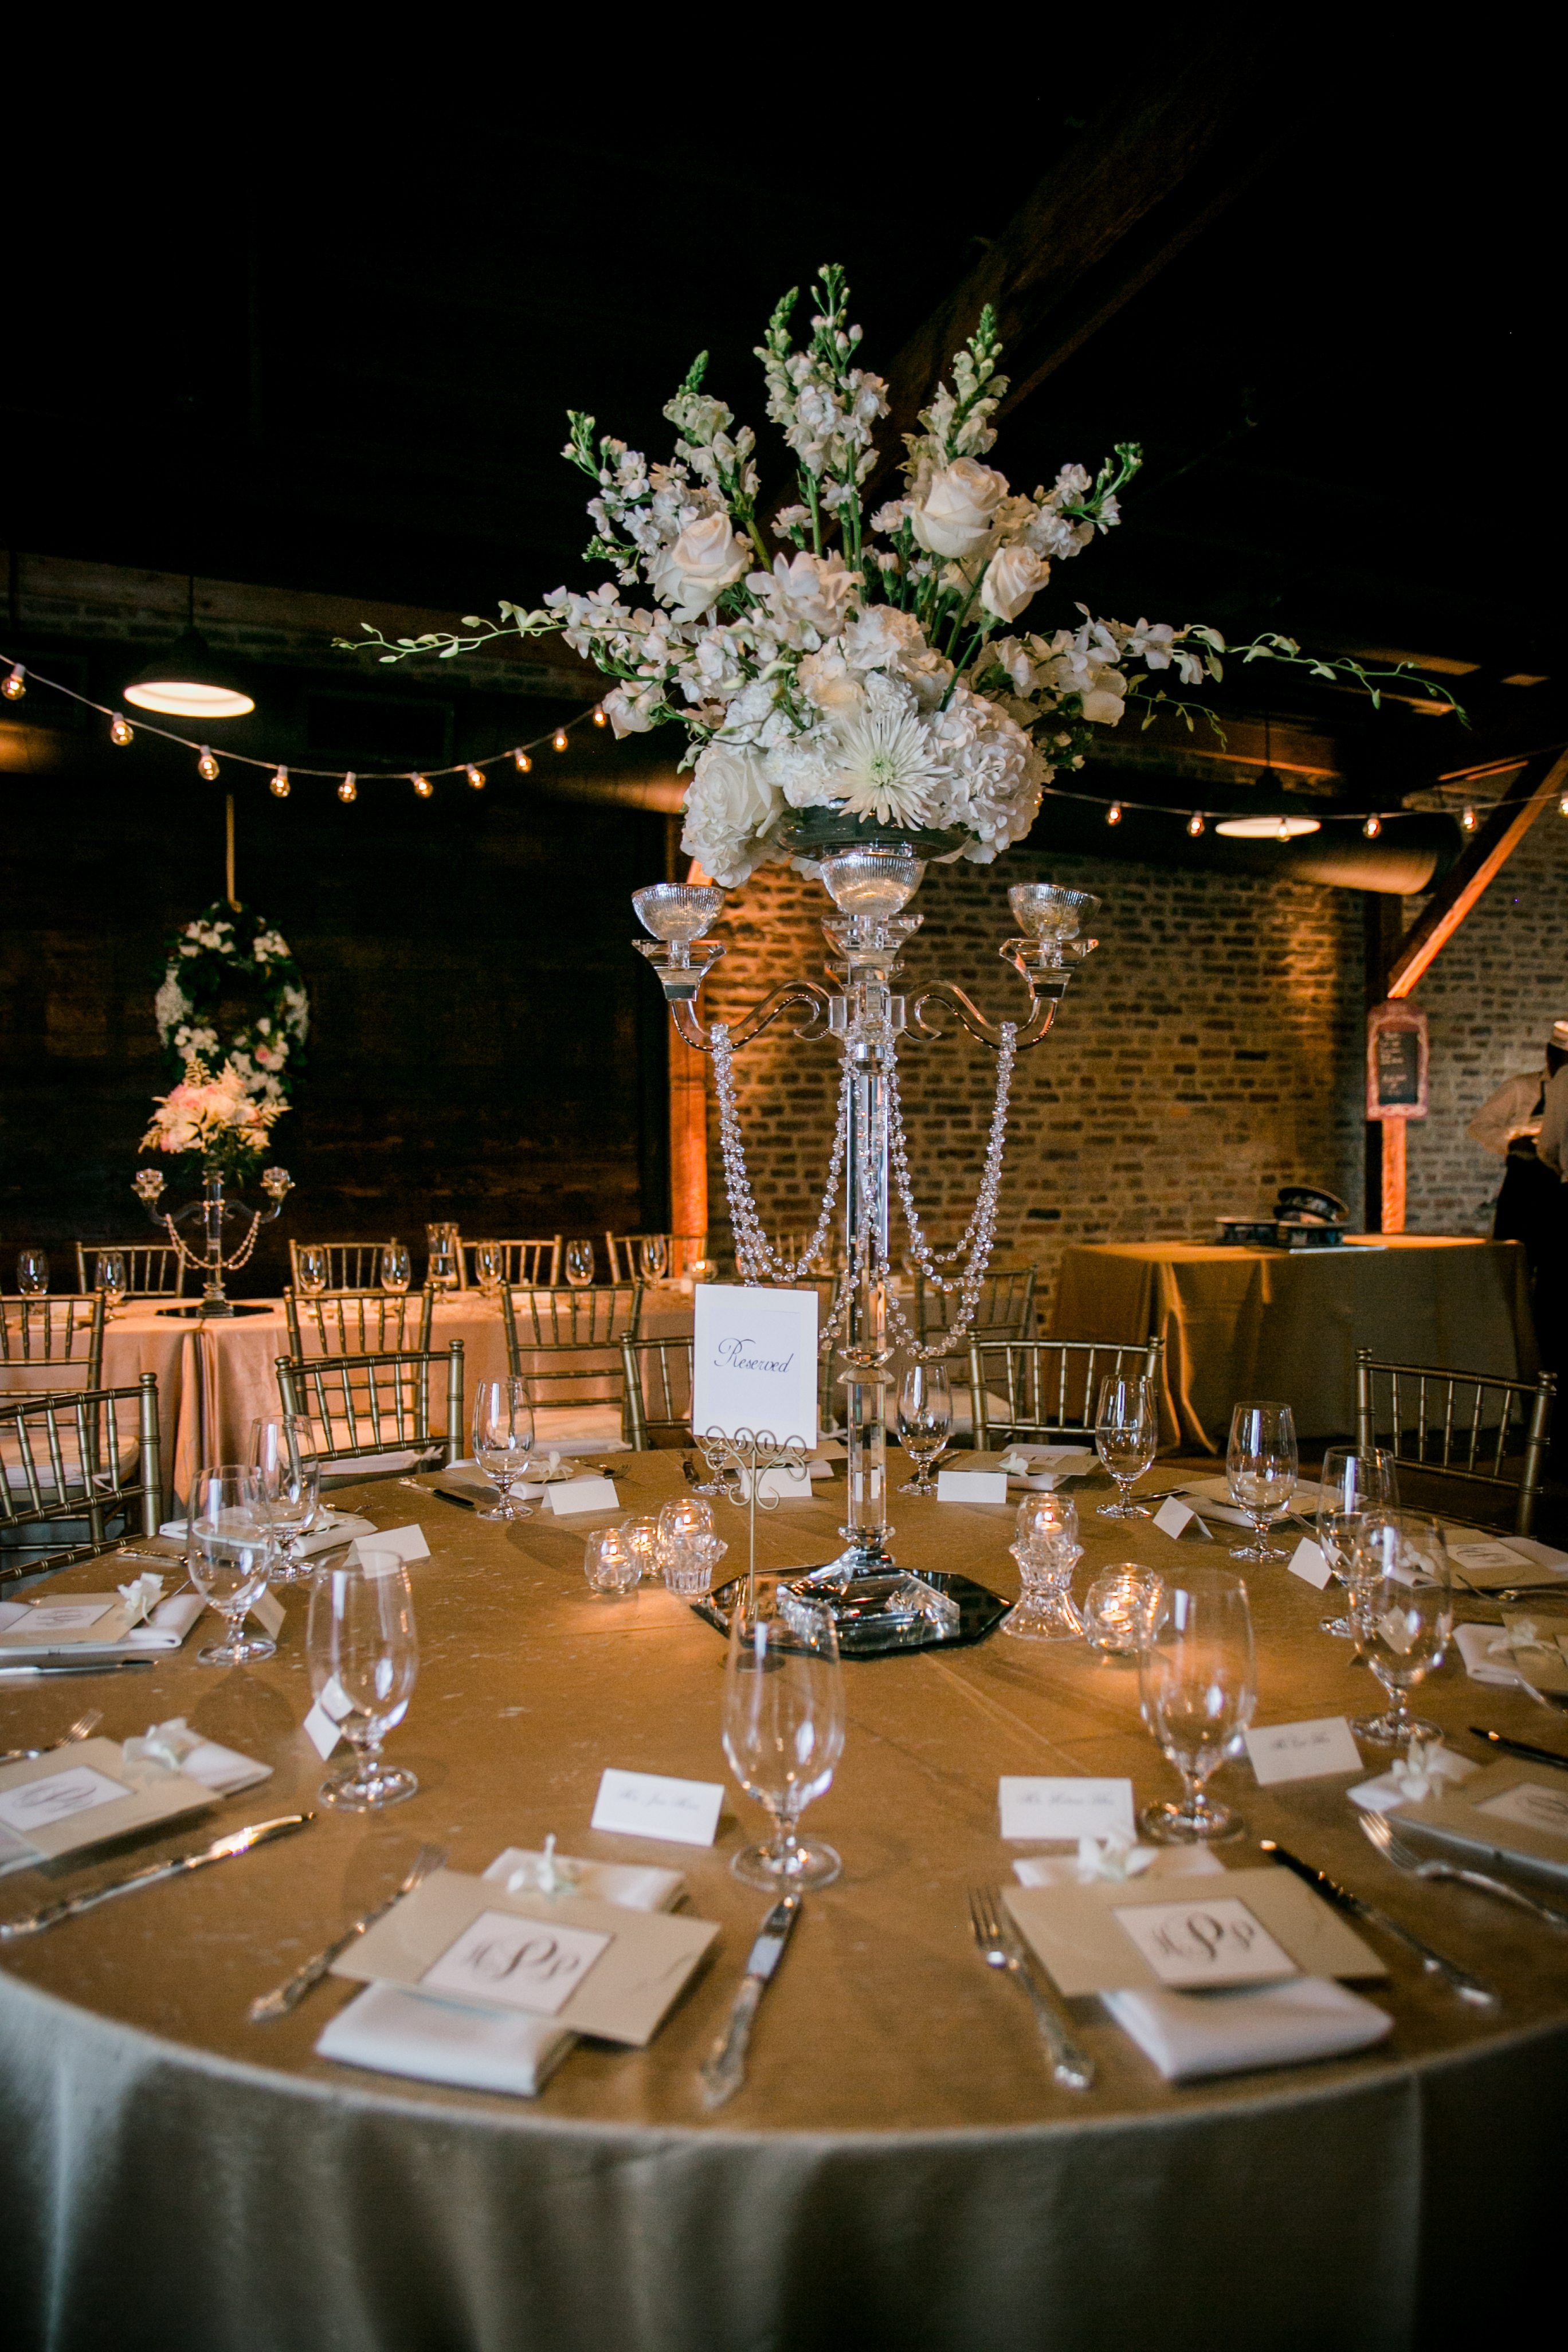 chiavari chairs rental houston how to make rocking chair cushions with ties classic wedding at station southern events party